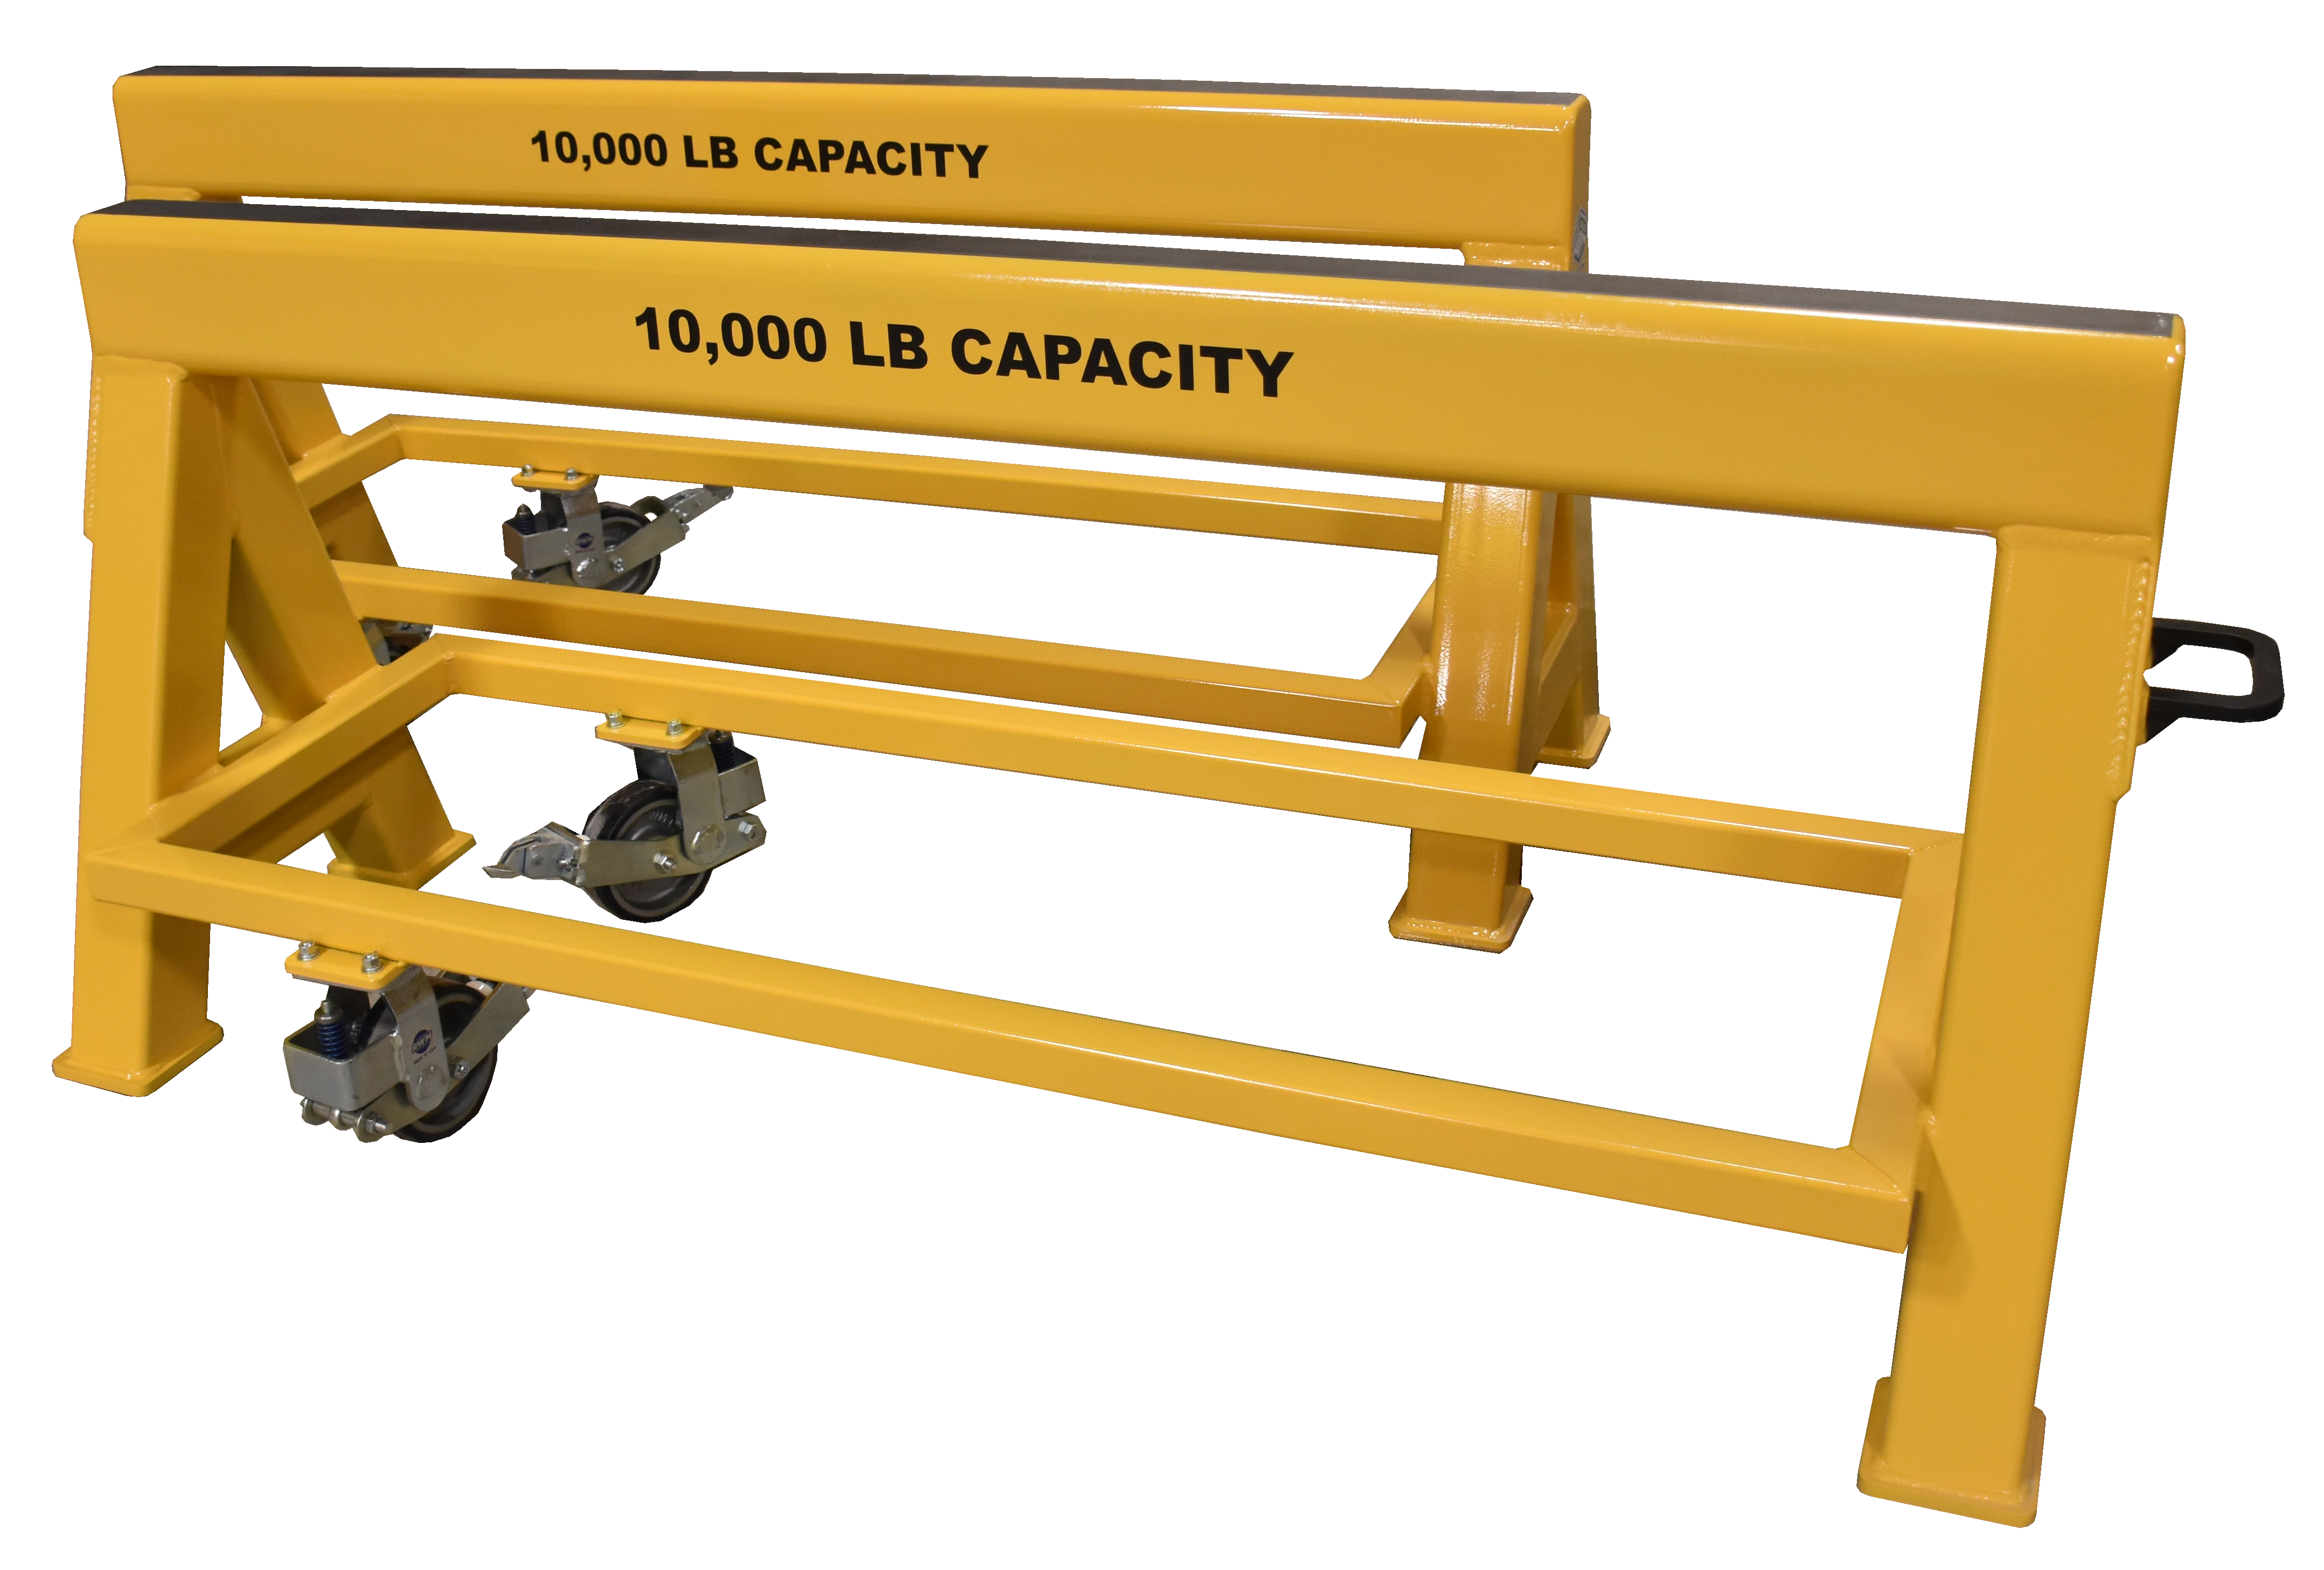 Heavy Duty Industrial steel sawhorse 10,000 LB. Steel Top Spring Loaded Compression Caster (194577)